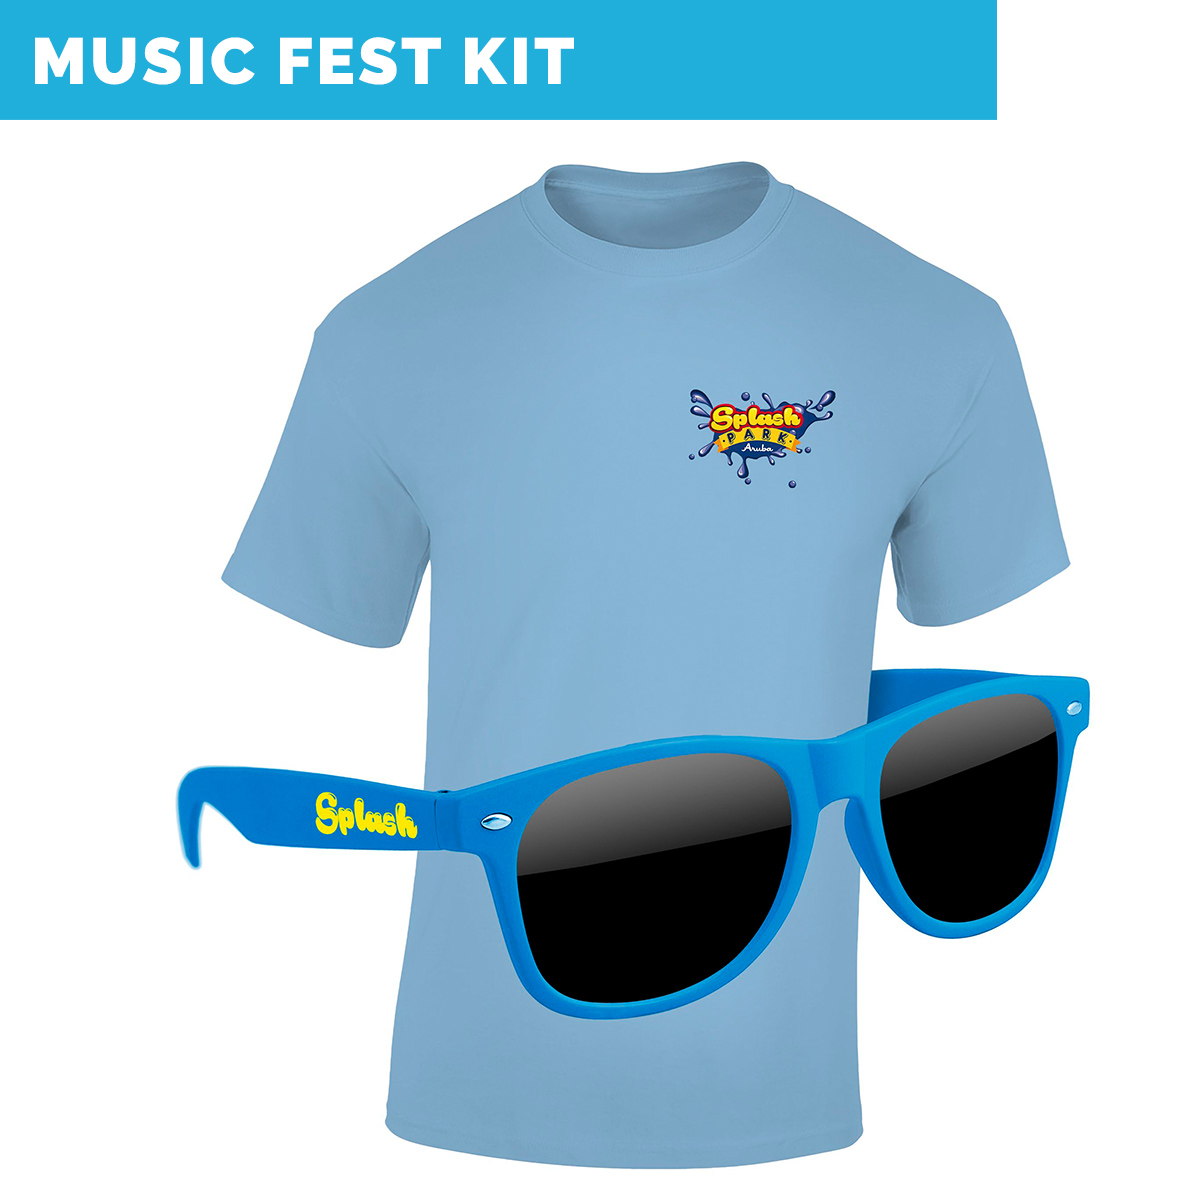 Work From Home Kits- festival kits